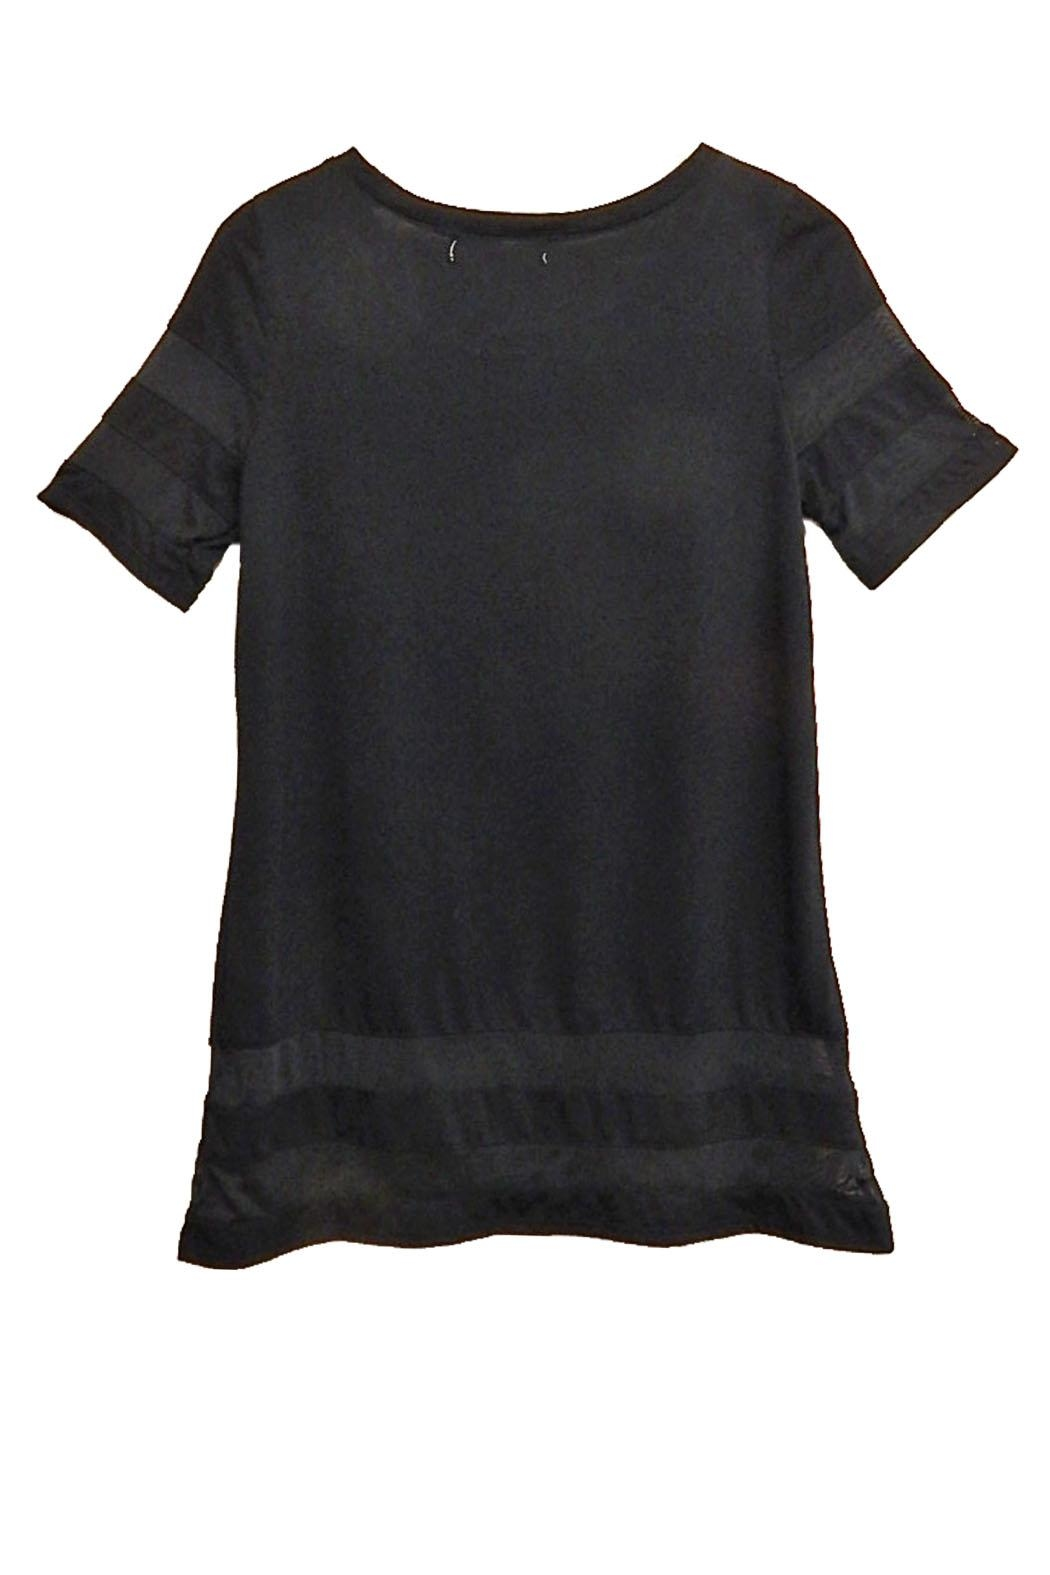 New York Laundry Black Sheer-Trim Top - Front Full Image